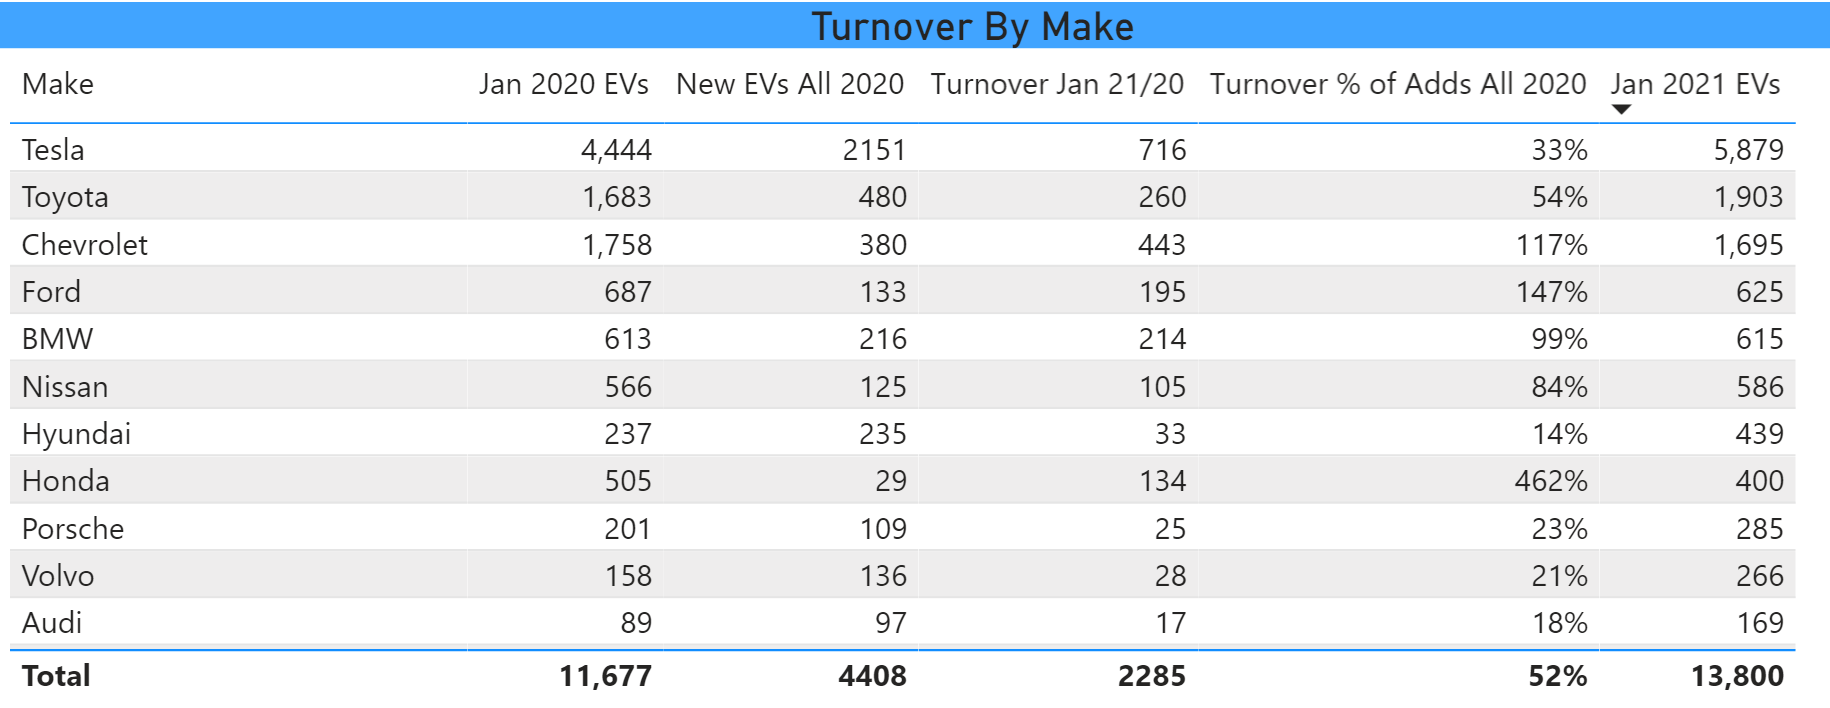 Turnover by Make 2020